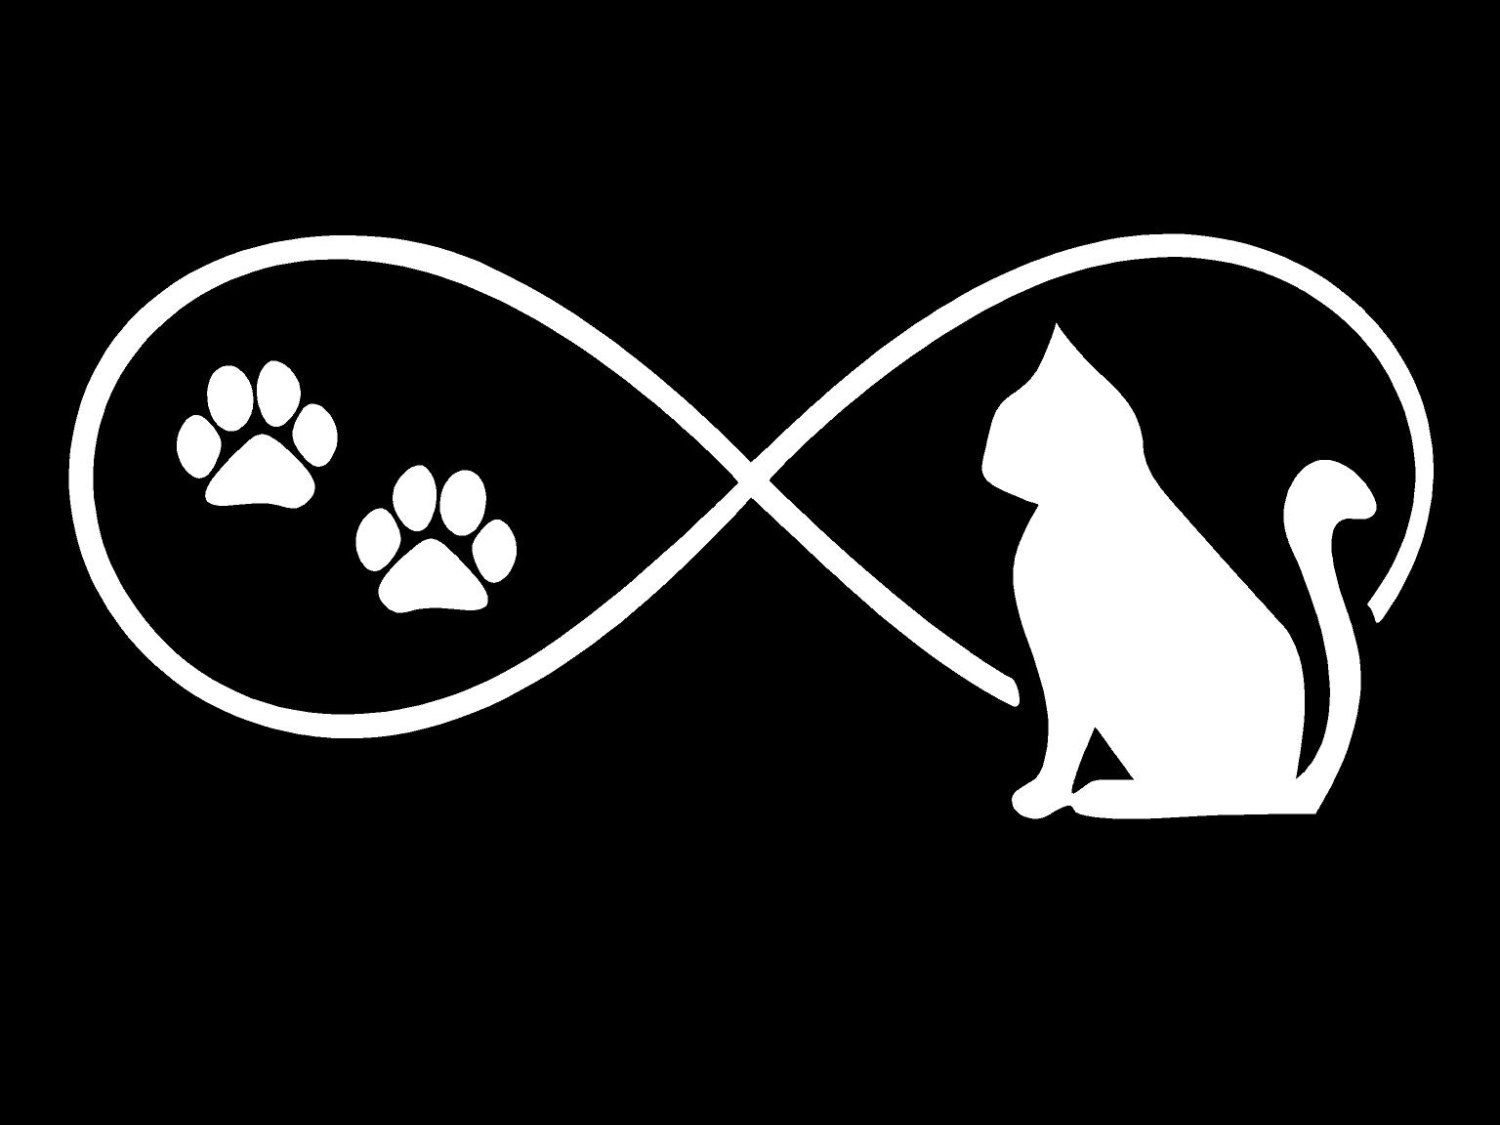 Cat Decals Paw Print Infinity Feline Truck Car Window Vinyl - Cat custom vinyl decals for car windows